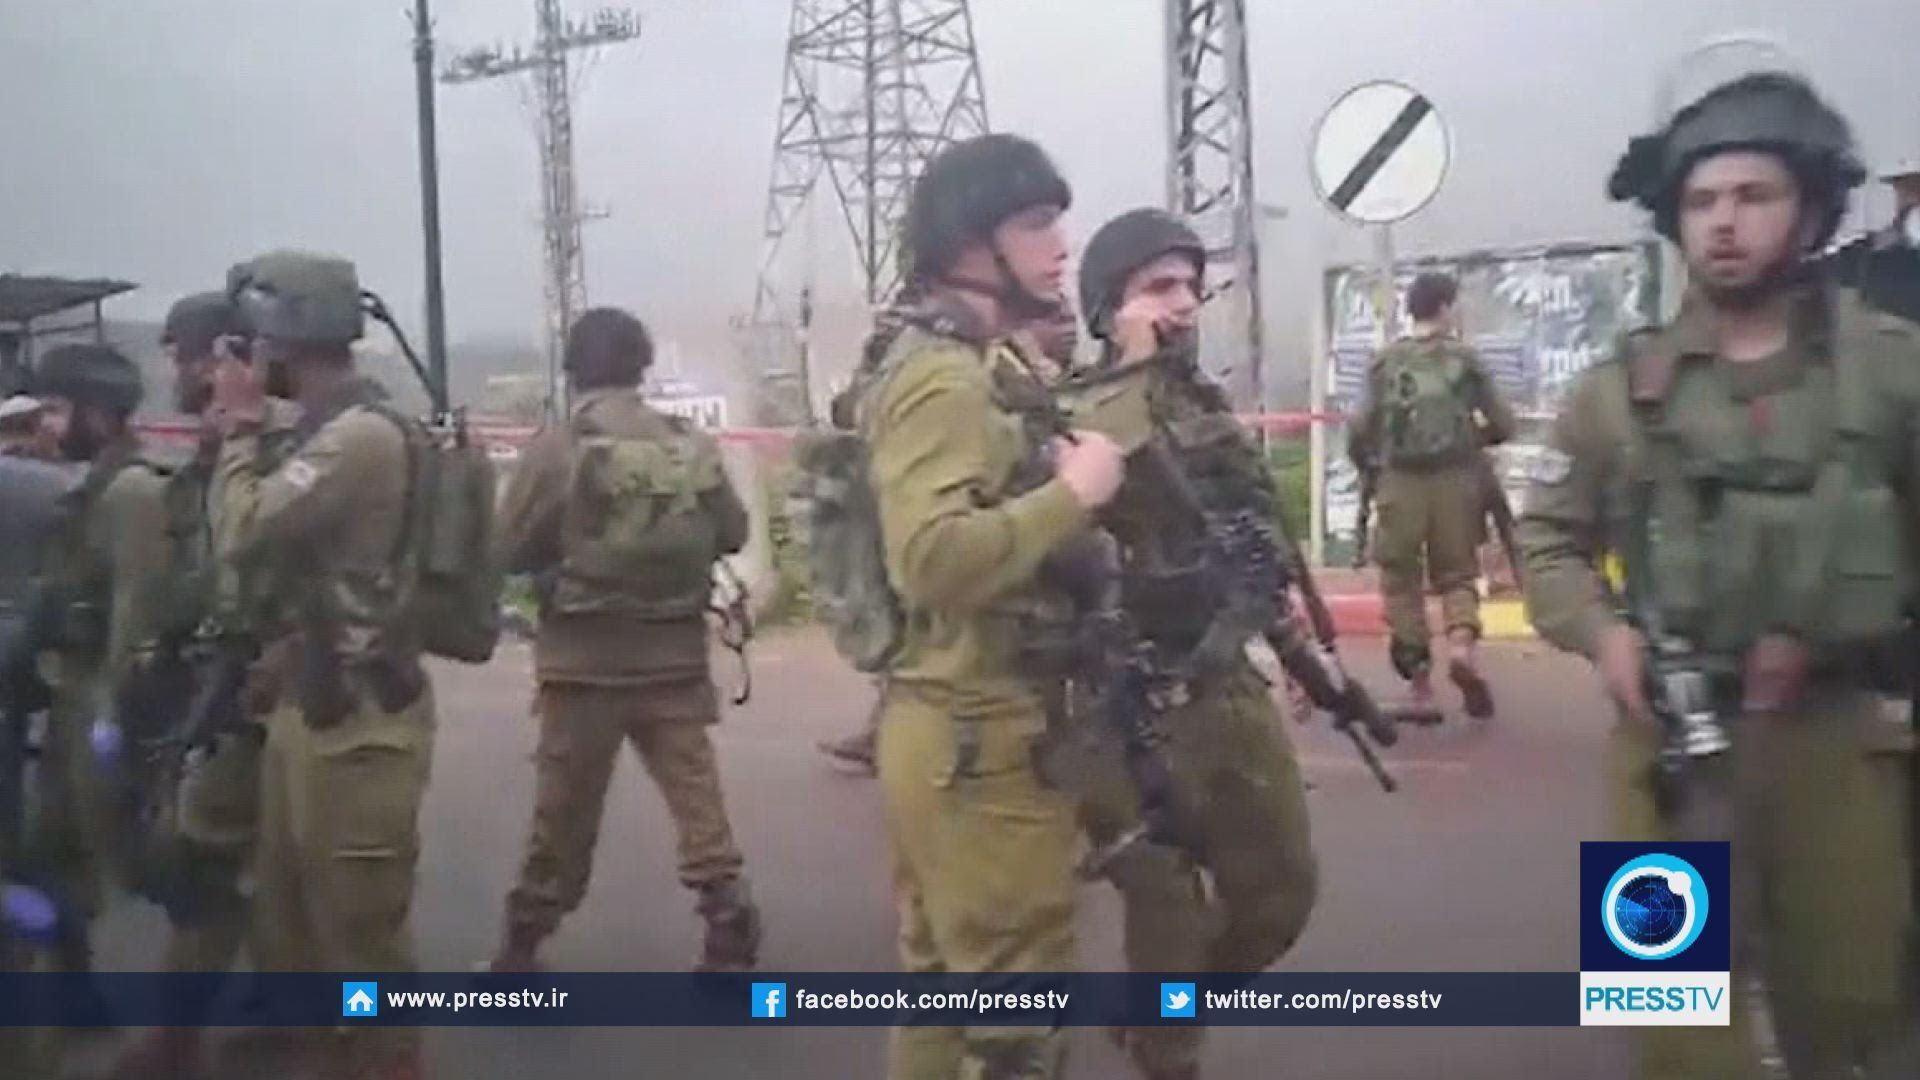 Israeli soldiers kill 3 Palestinians in West Bank